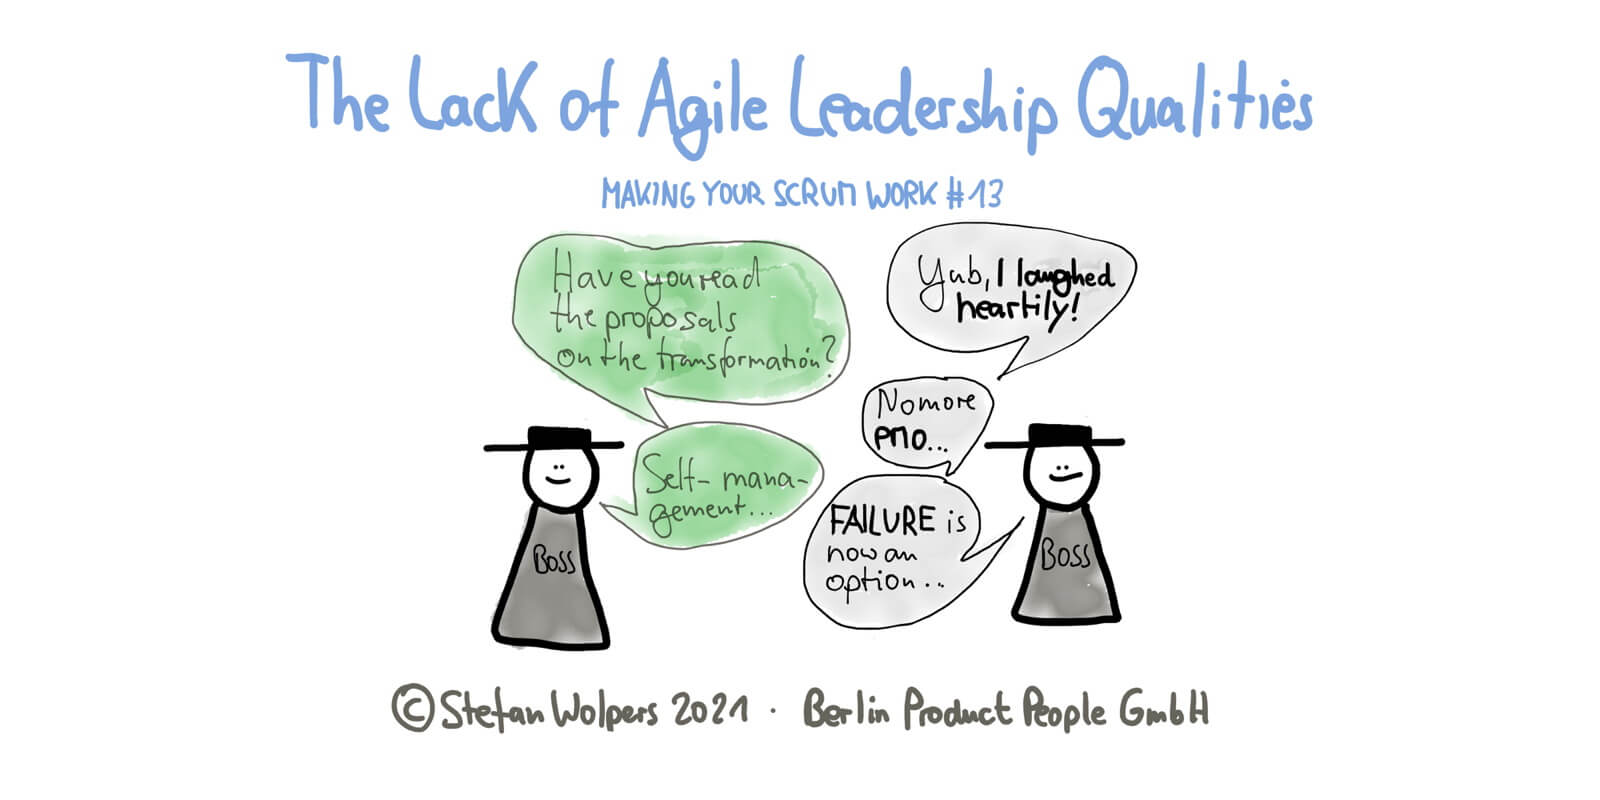 The Lack of Agile Leadership Qualities — Making Your Scrum Work #15